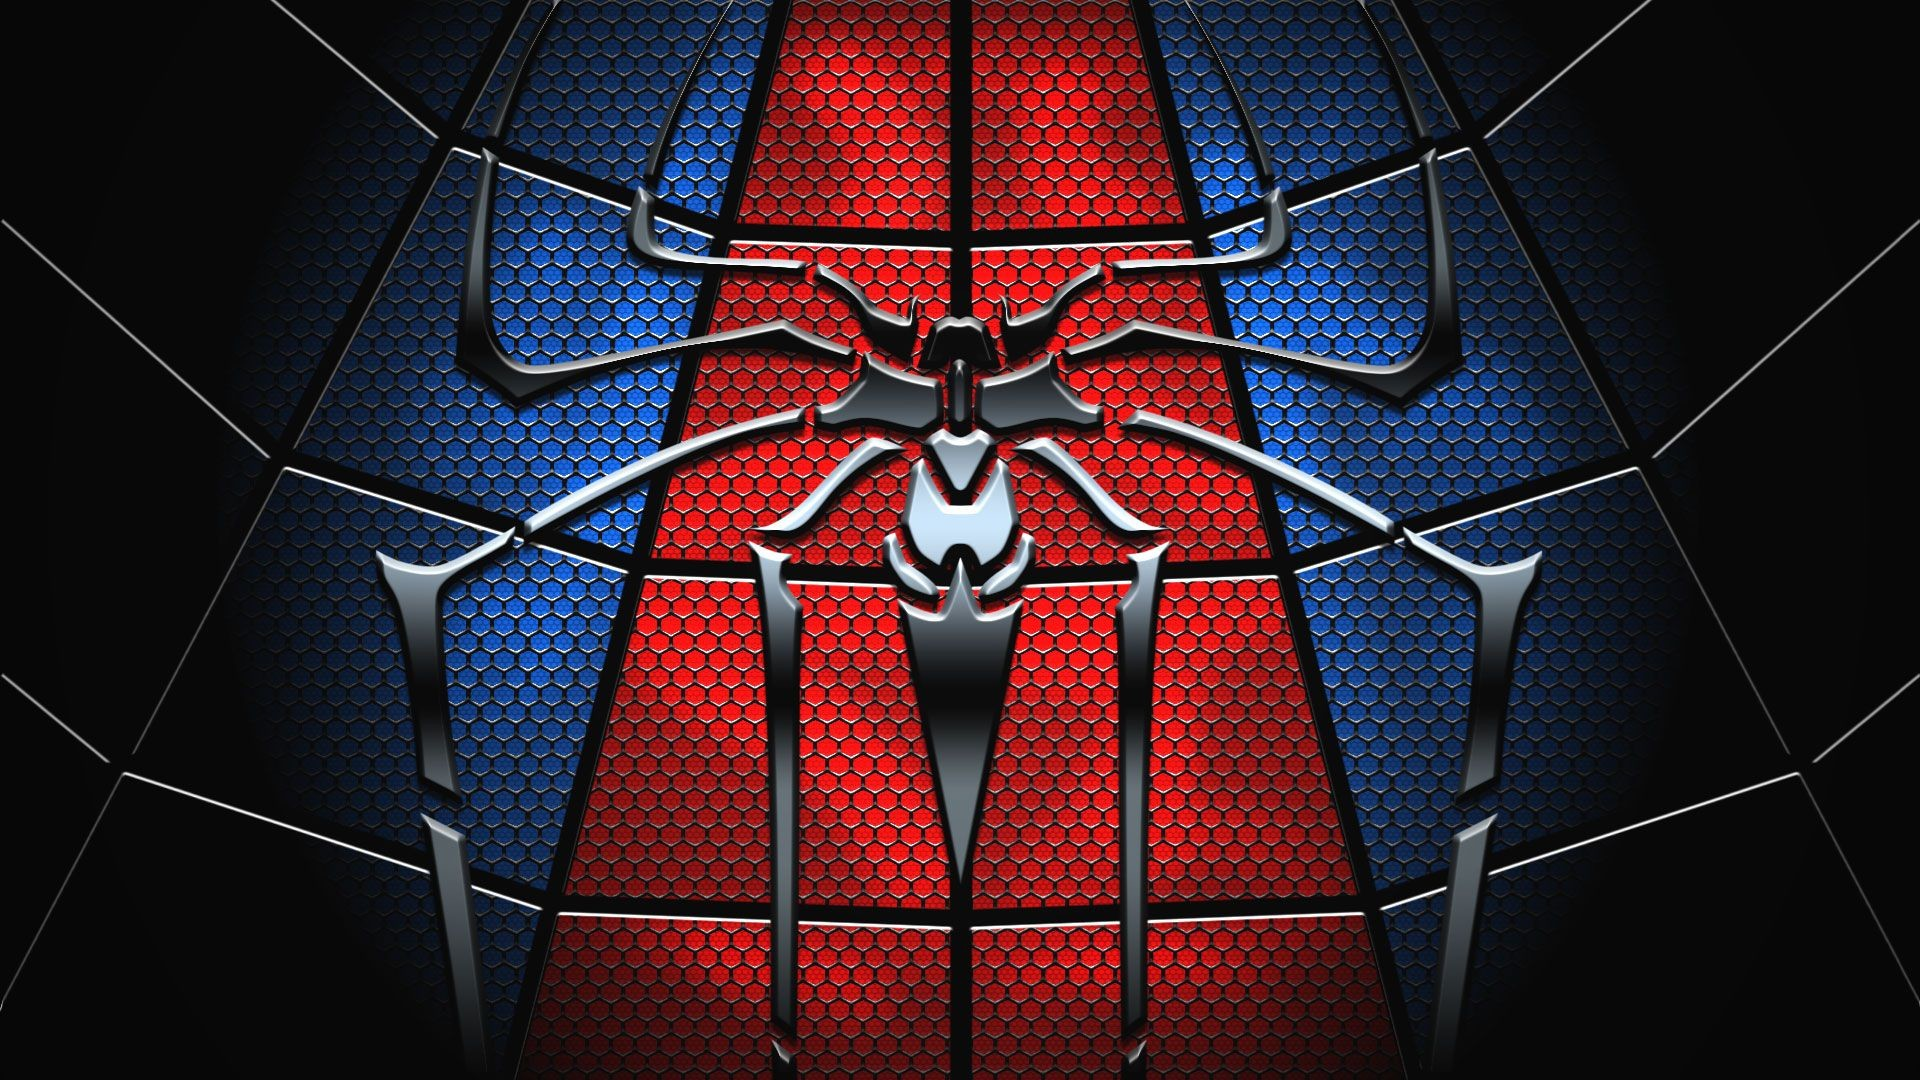 Spiderman Logo Widescreen Wallpapers 239 – HD Wallpapers Site